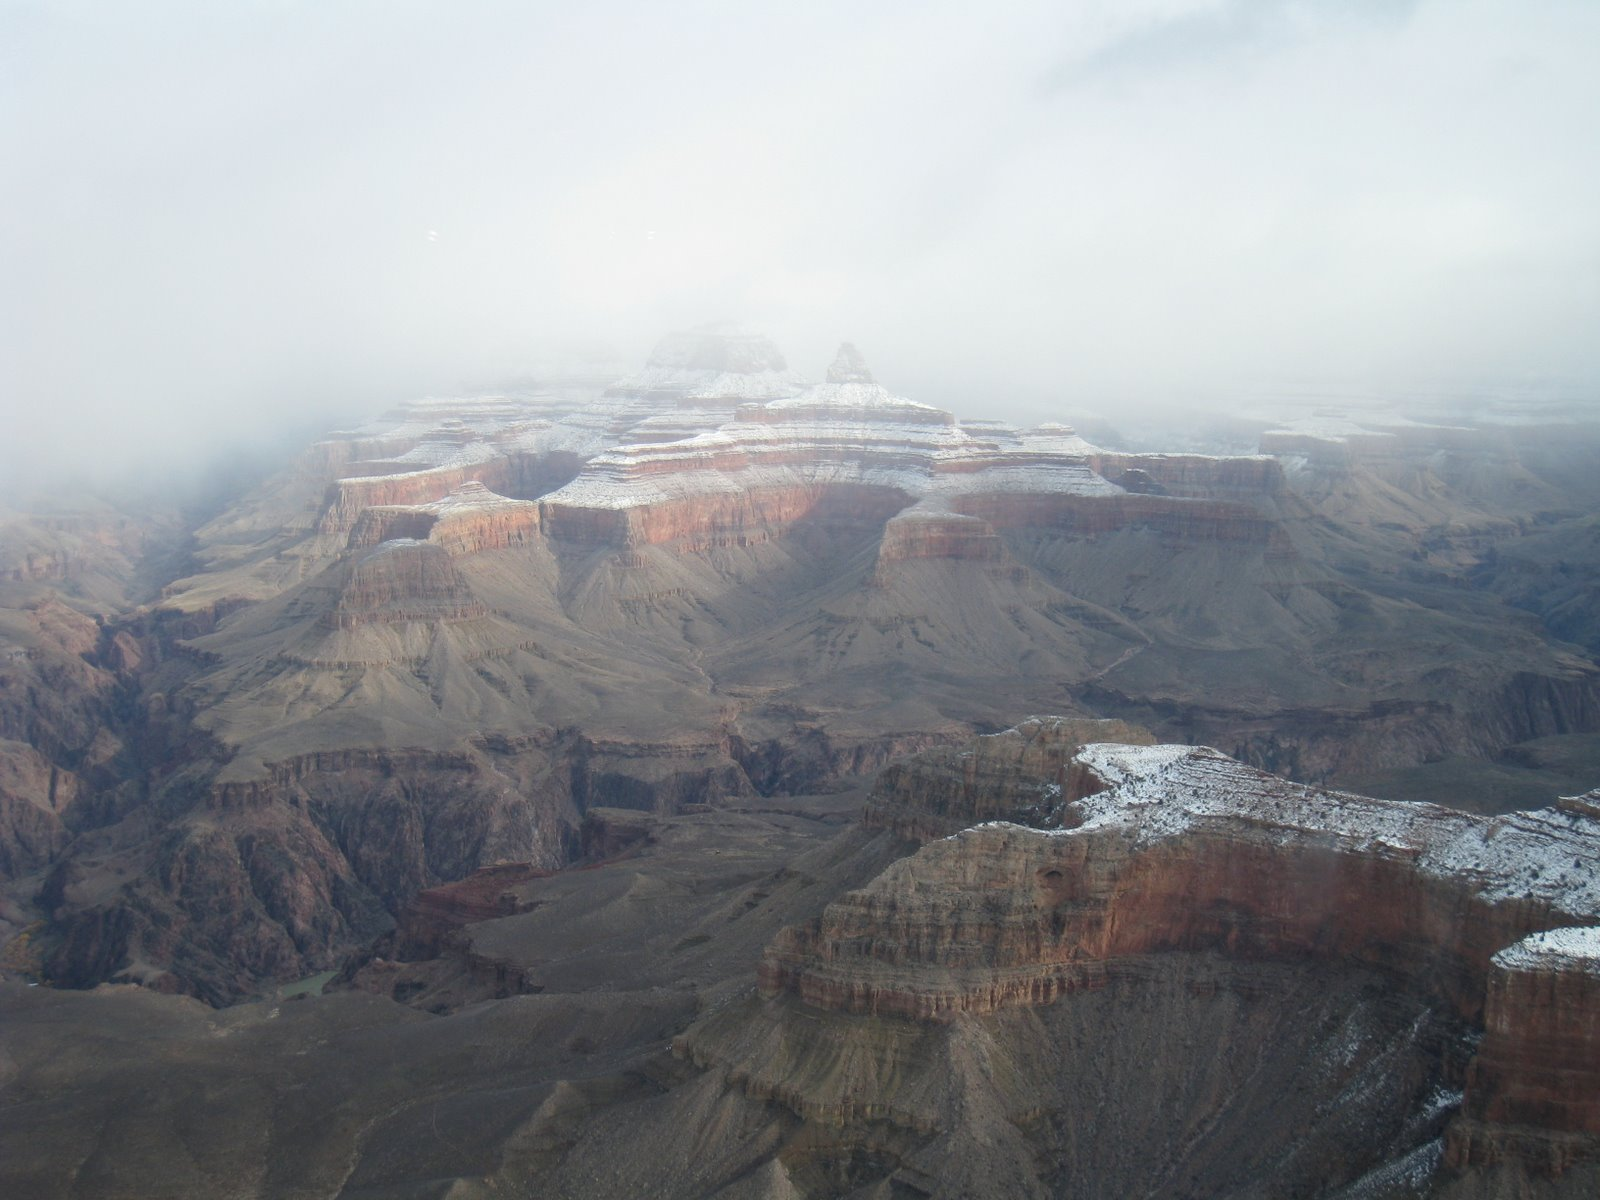 View from inside the Yavapai Observation Station